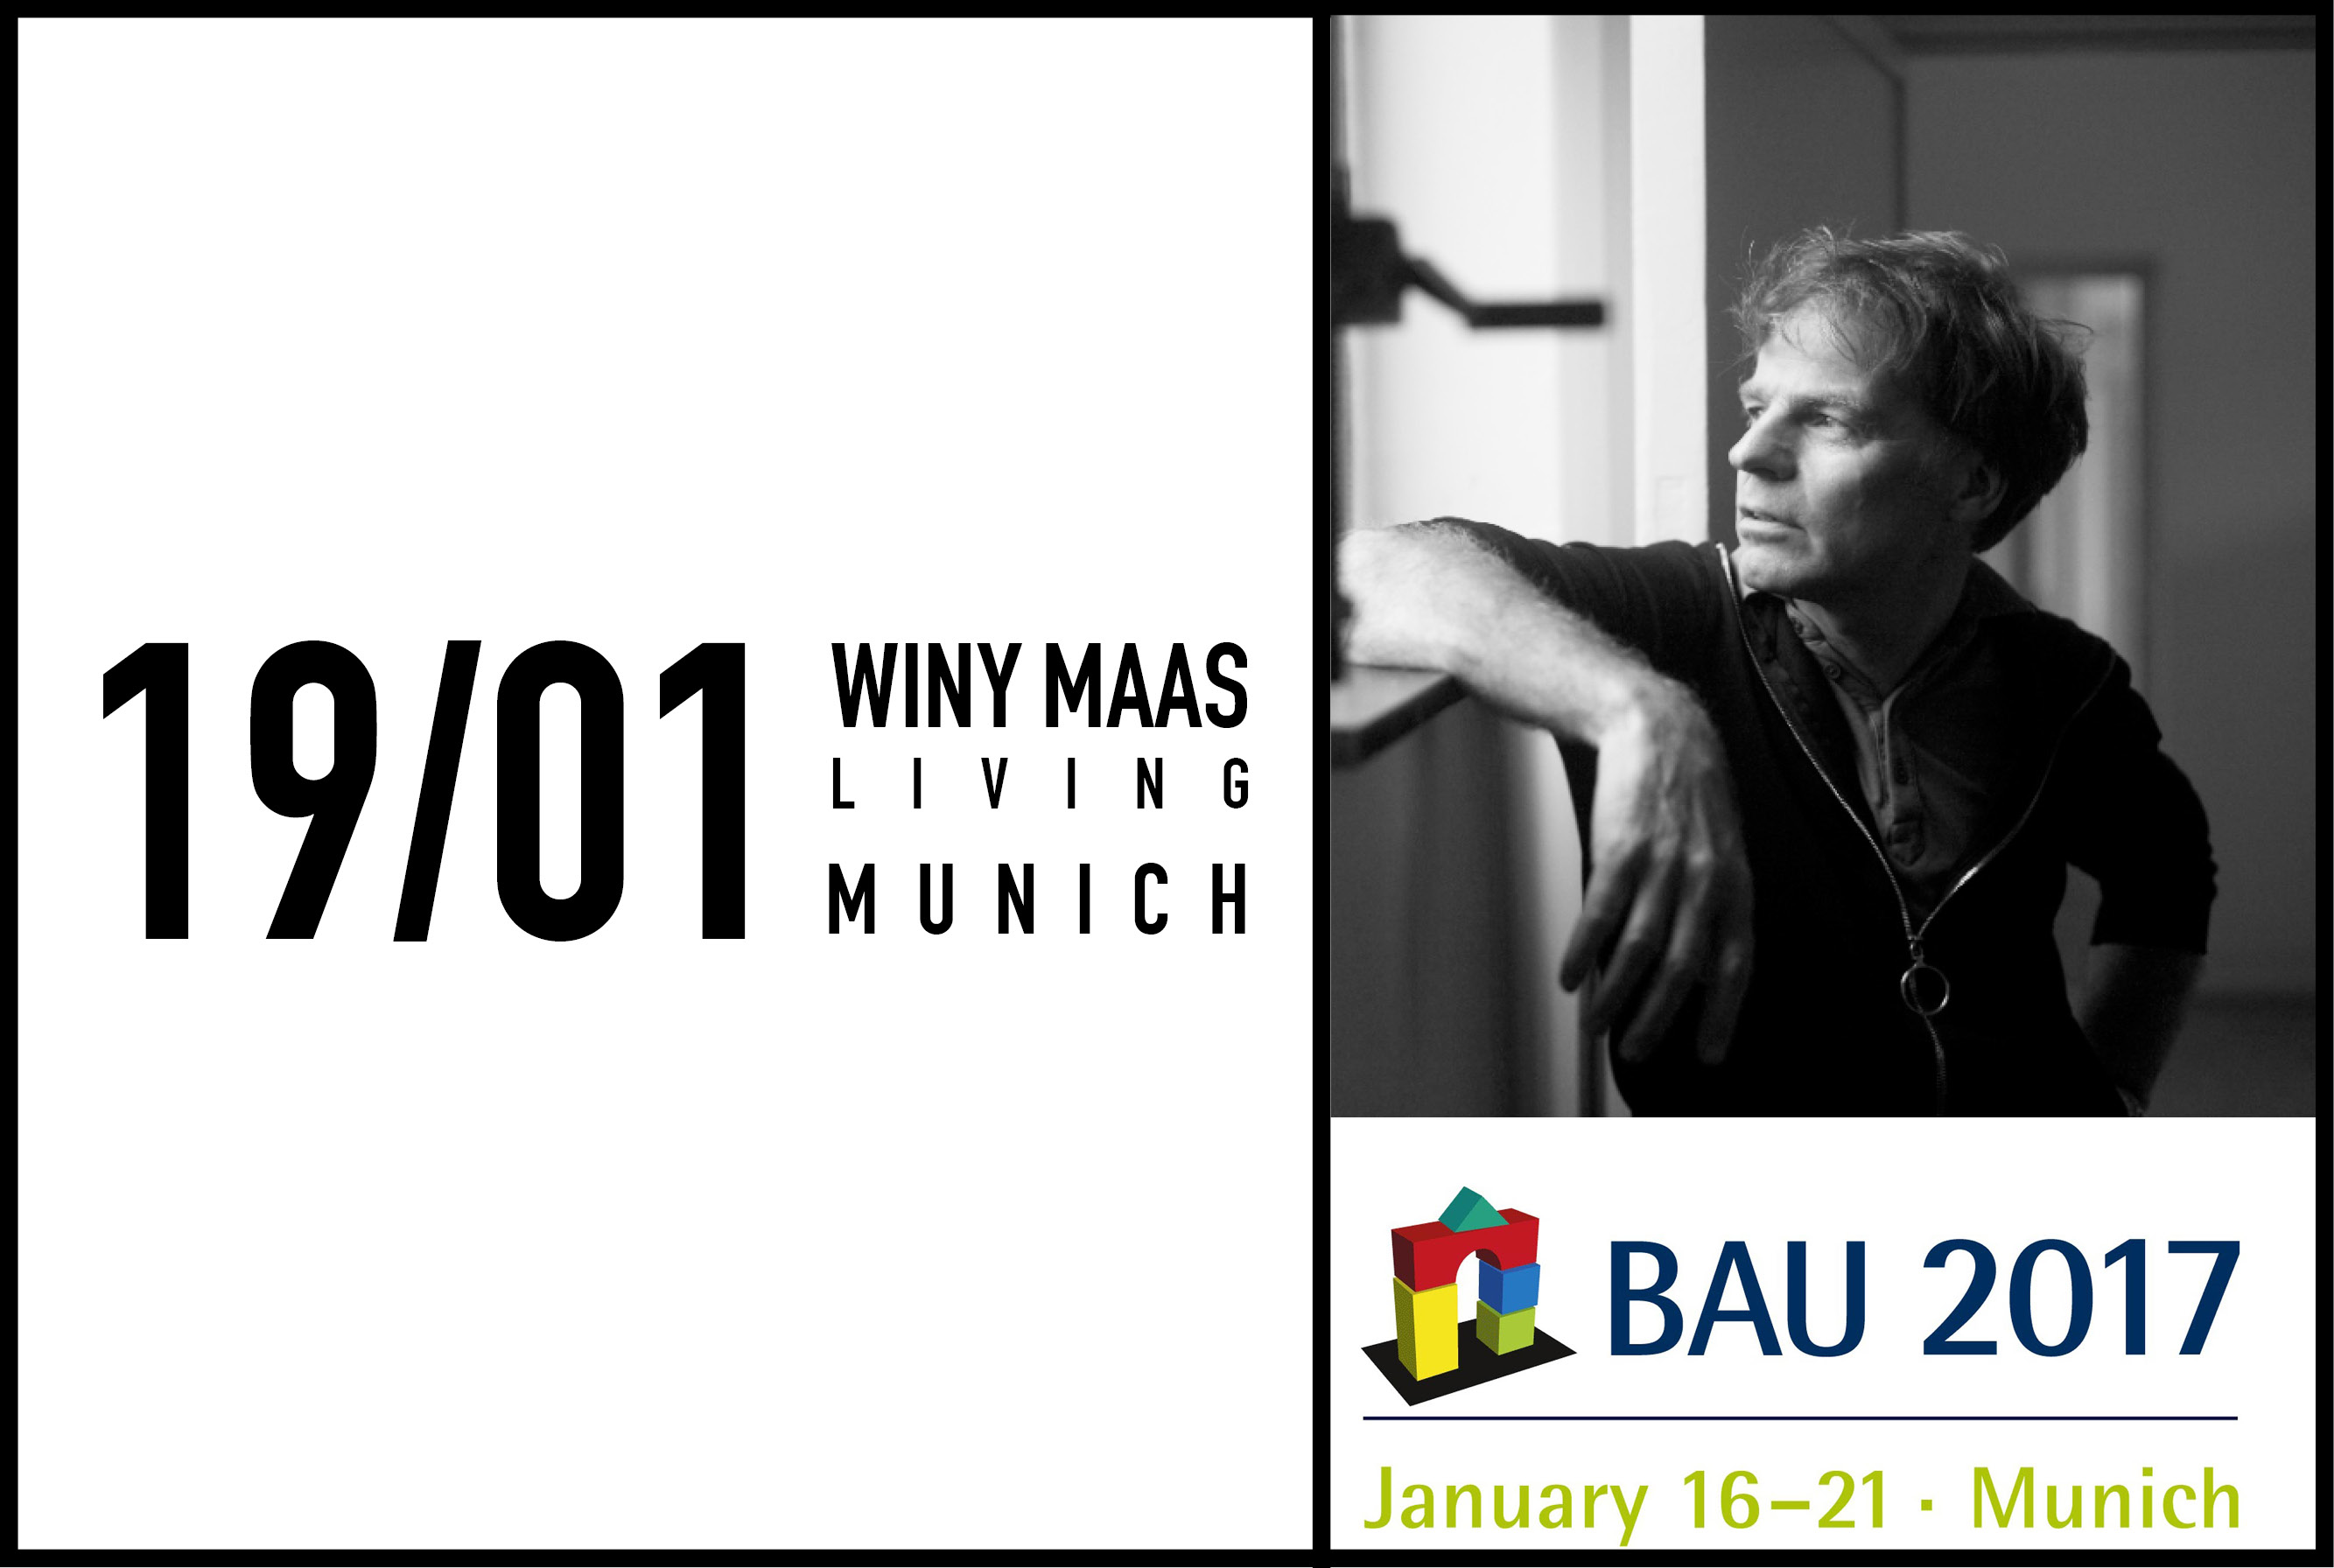 Winy Maas to give Keynote Lecture at BAU 2017 in Munich, 19 January 2017